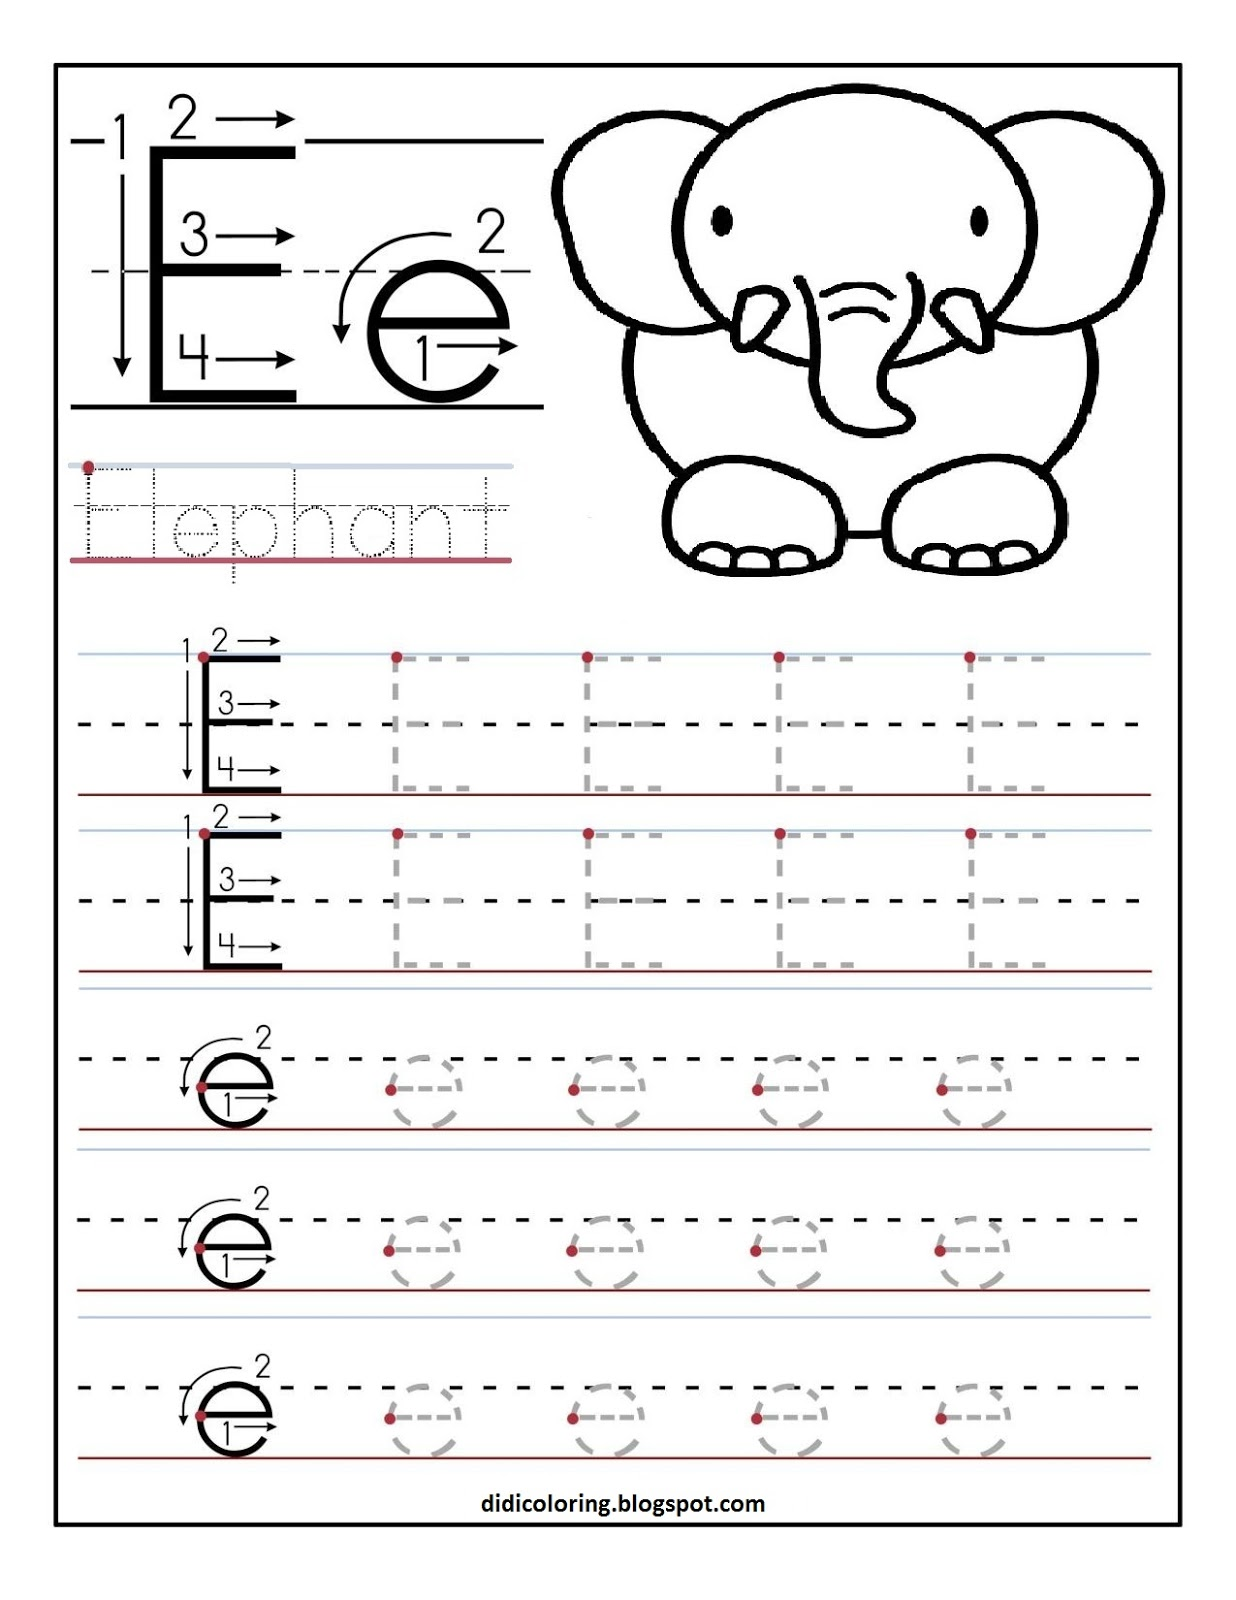 Free Printable Worksheet For Kidsst For Your Child To